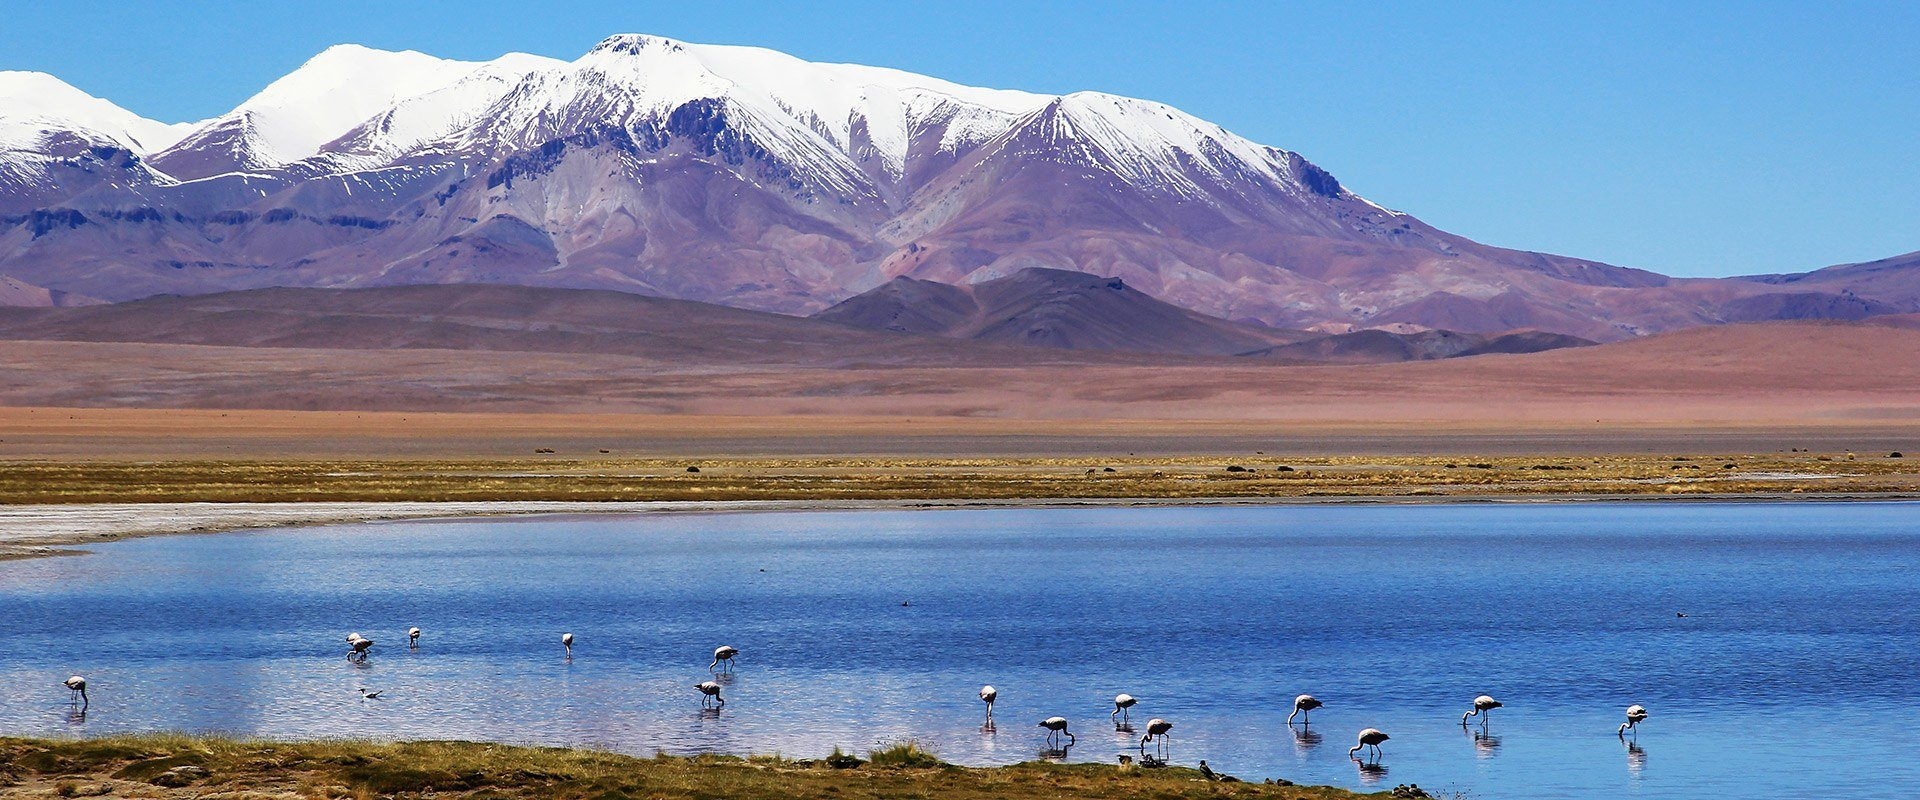 Chili altiplano salar de tara flamants roses lac montagne nature